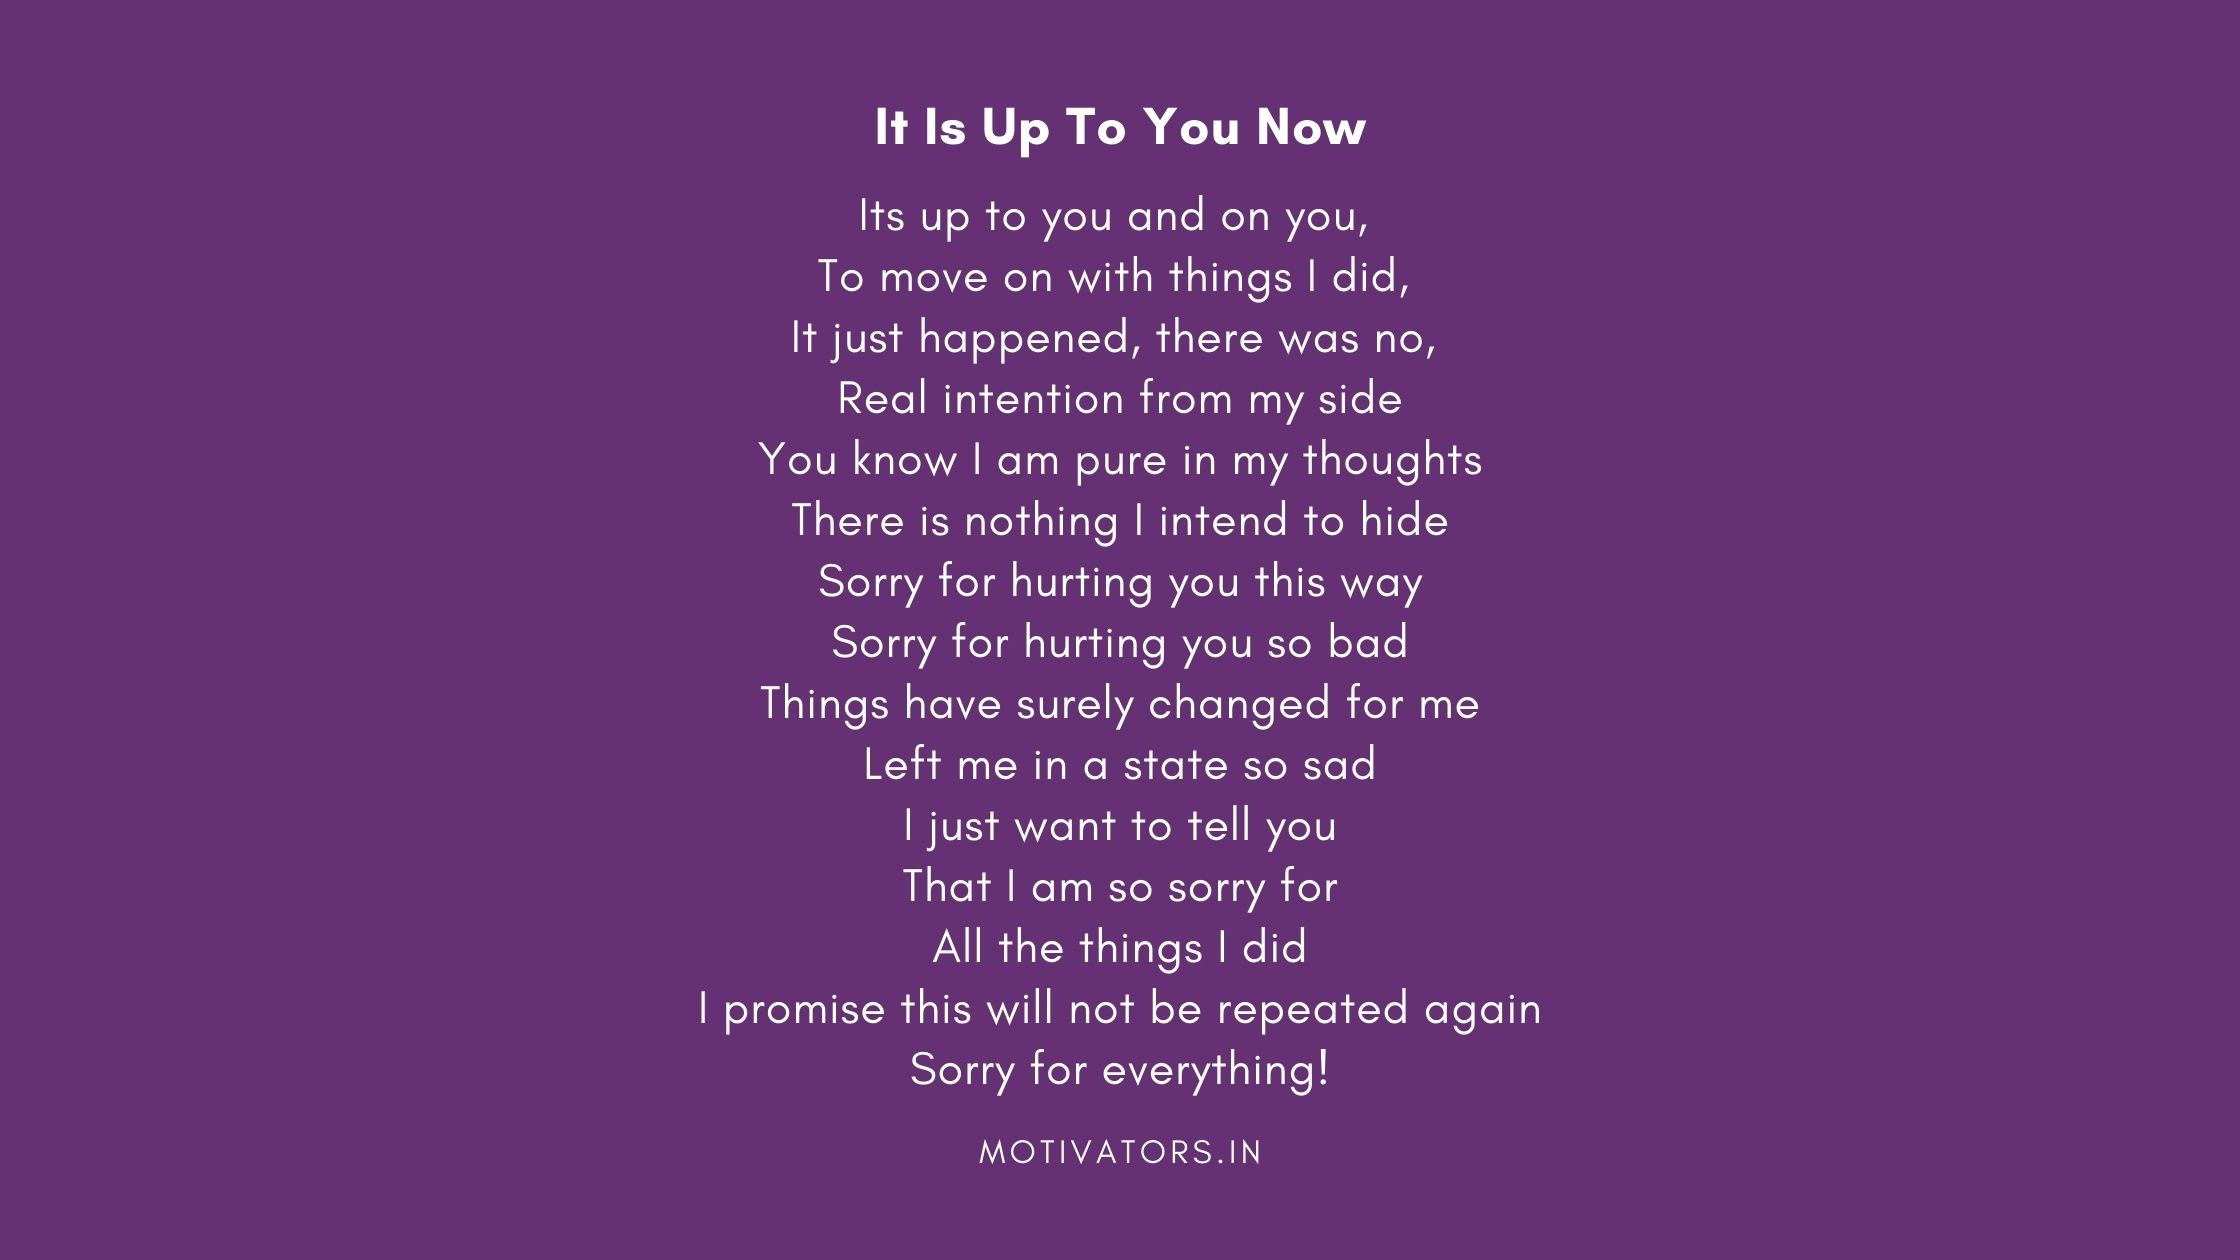 It Is Up To You Now